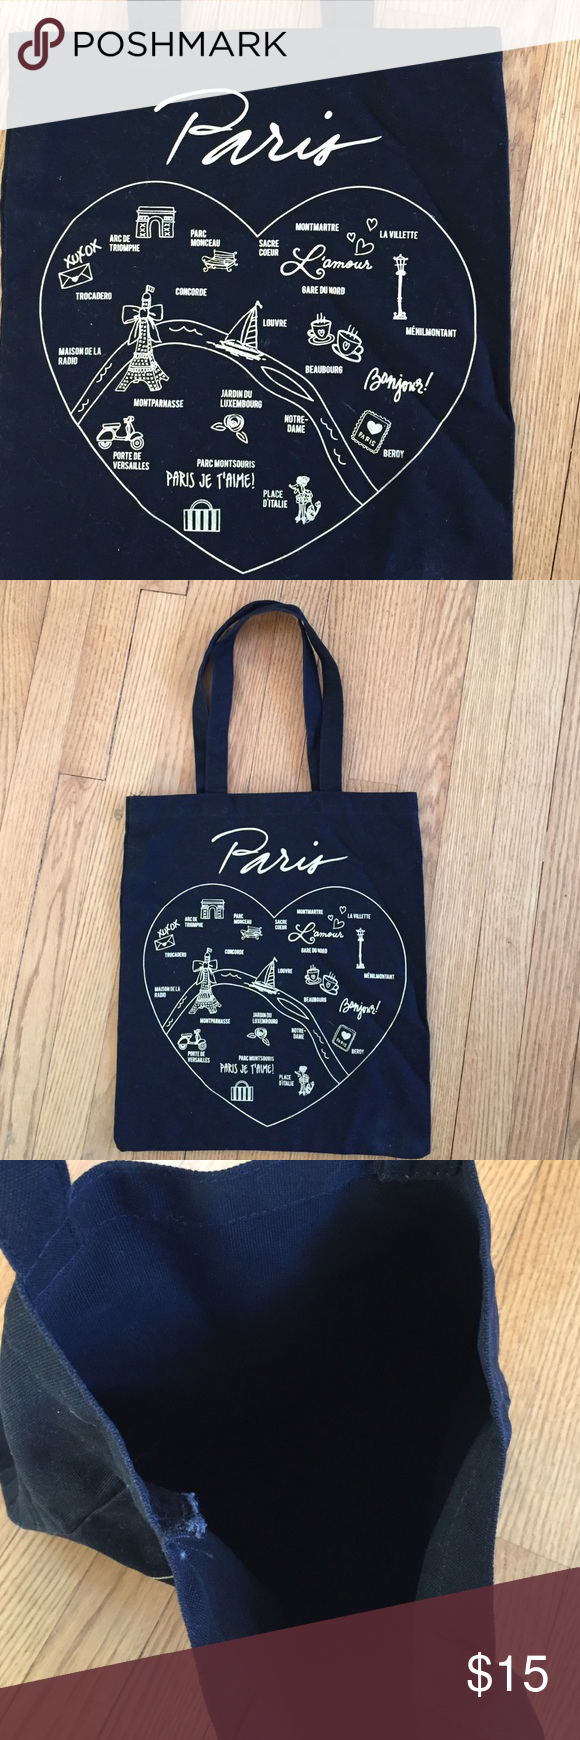 "Paris Totebag. ✈️ Canvas Paris tote bag, simple and cute.  Measures 14"" X 16"".  Gold lettering of Paris tourist spots. Bags Totes"